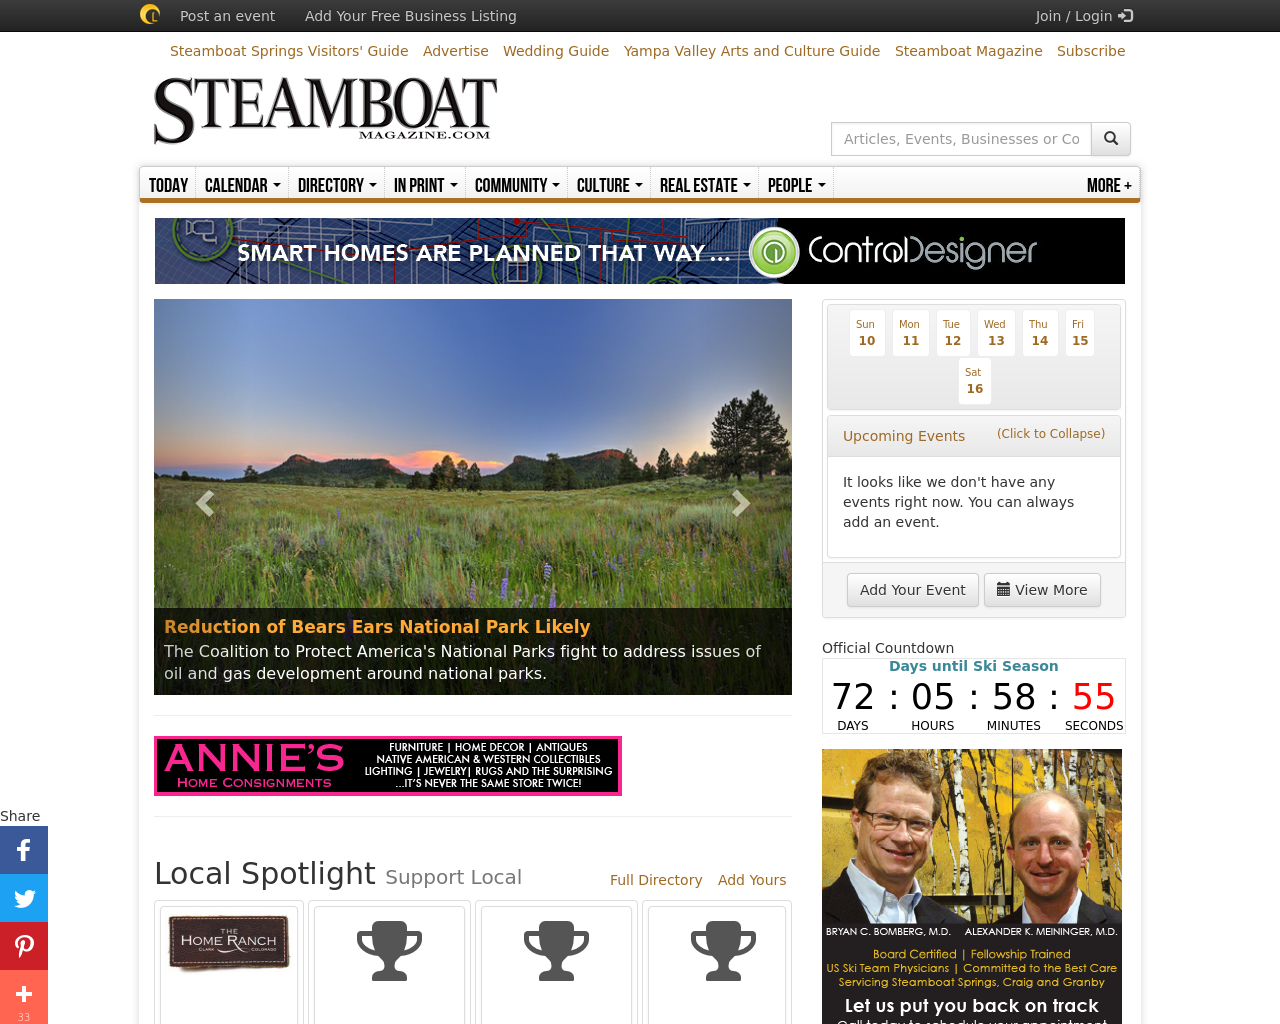 Steamboat-Magazine-Advertising-Reviews-Pricing